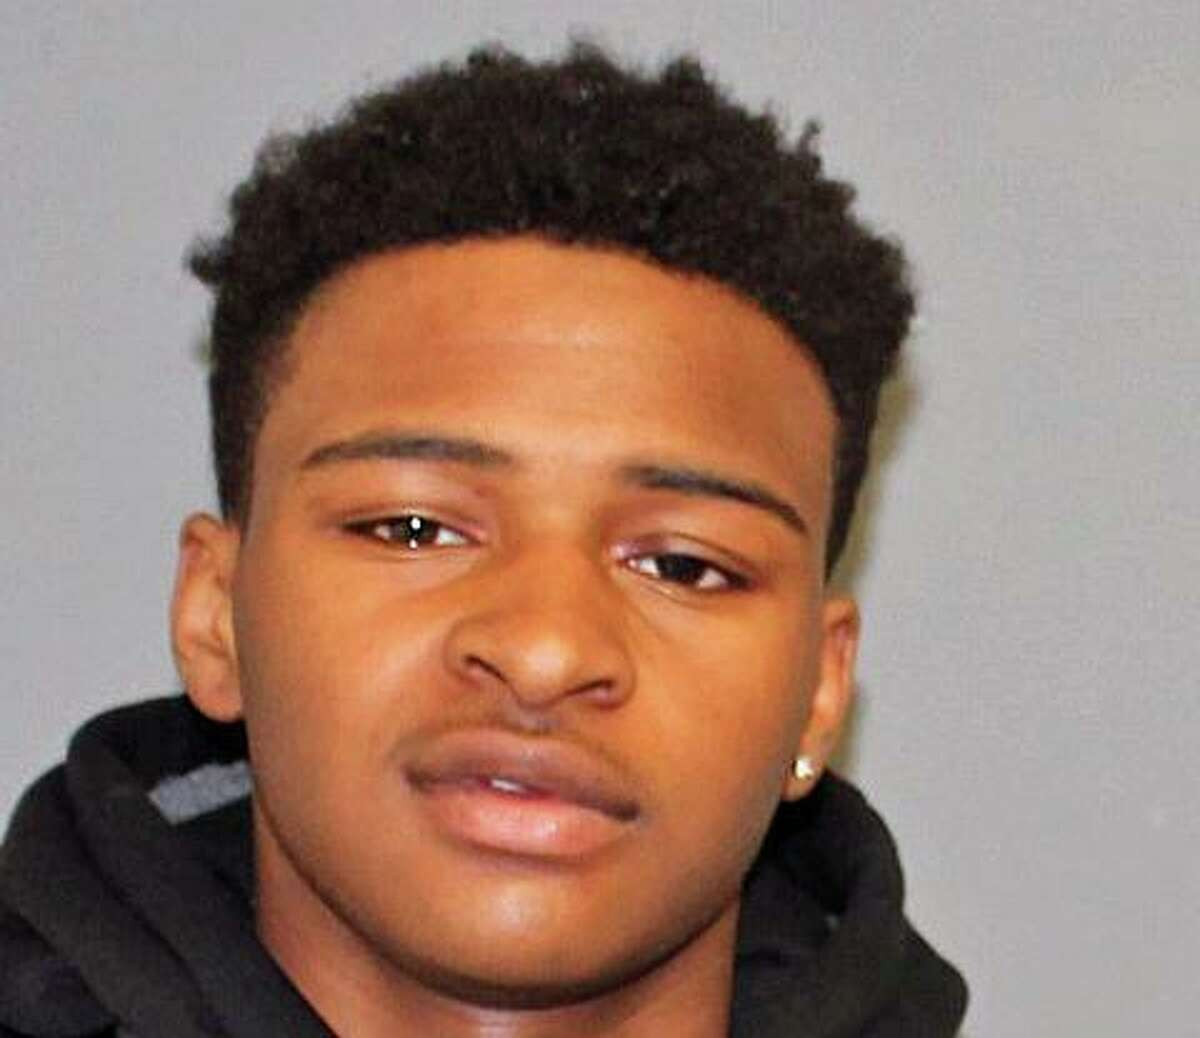 Nehemian Coates, 18, of Waterbury, was charged with third-degree larceny, criminal attempt at third-degree burglary, interfering with officers, simple trespass and operating a motor vehicle under suspension.